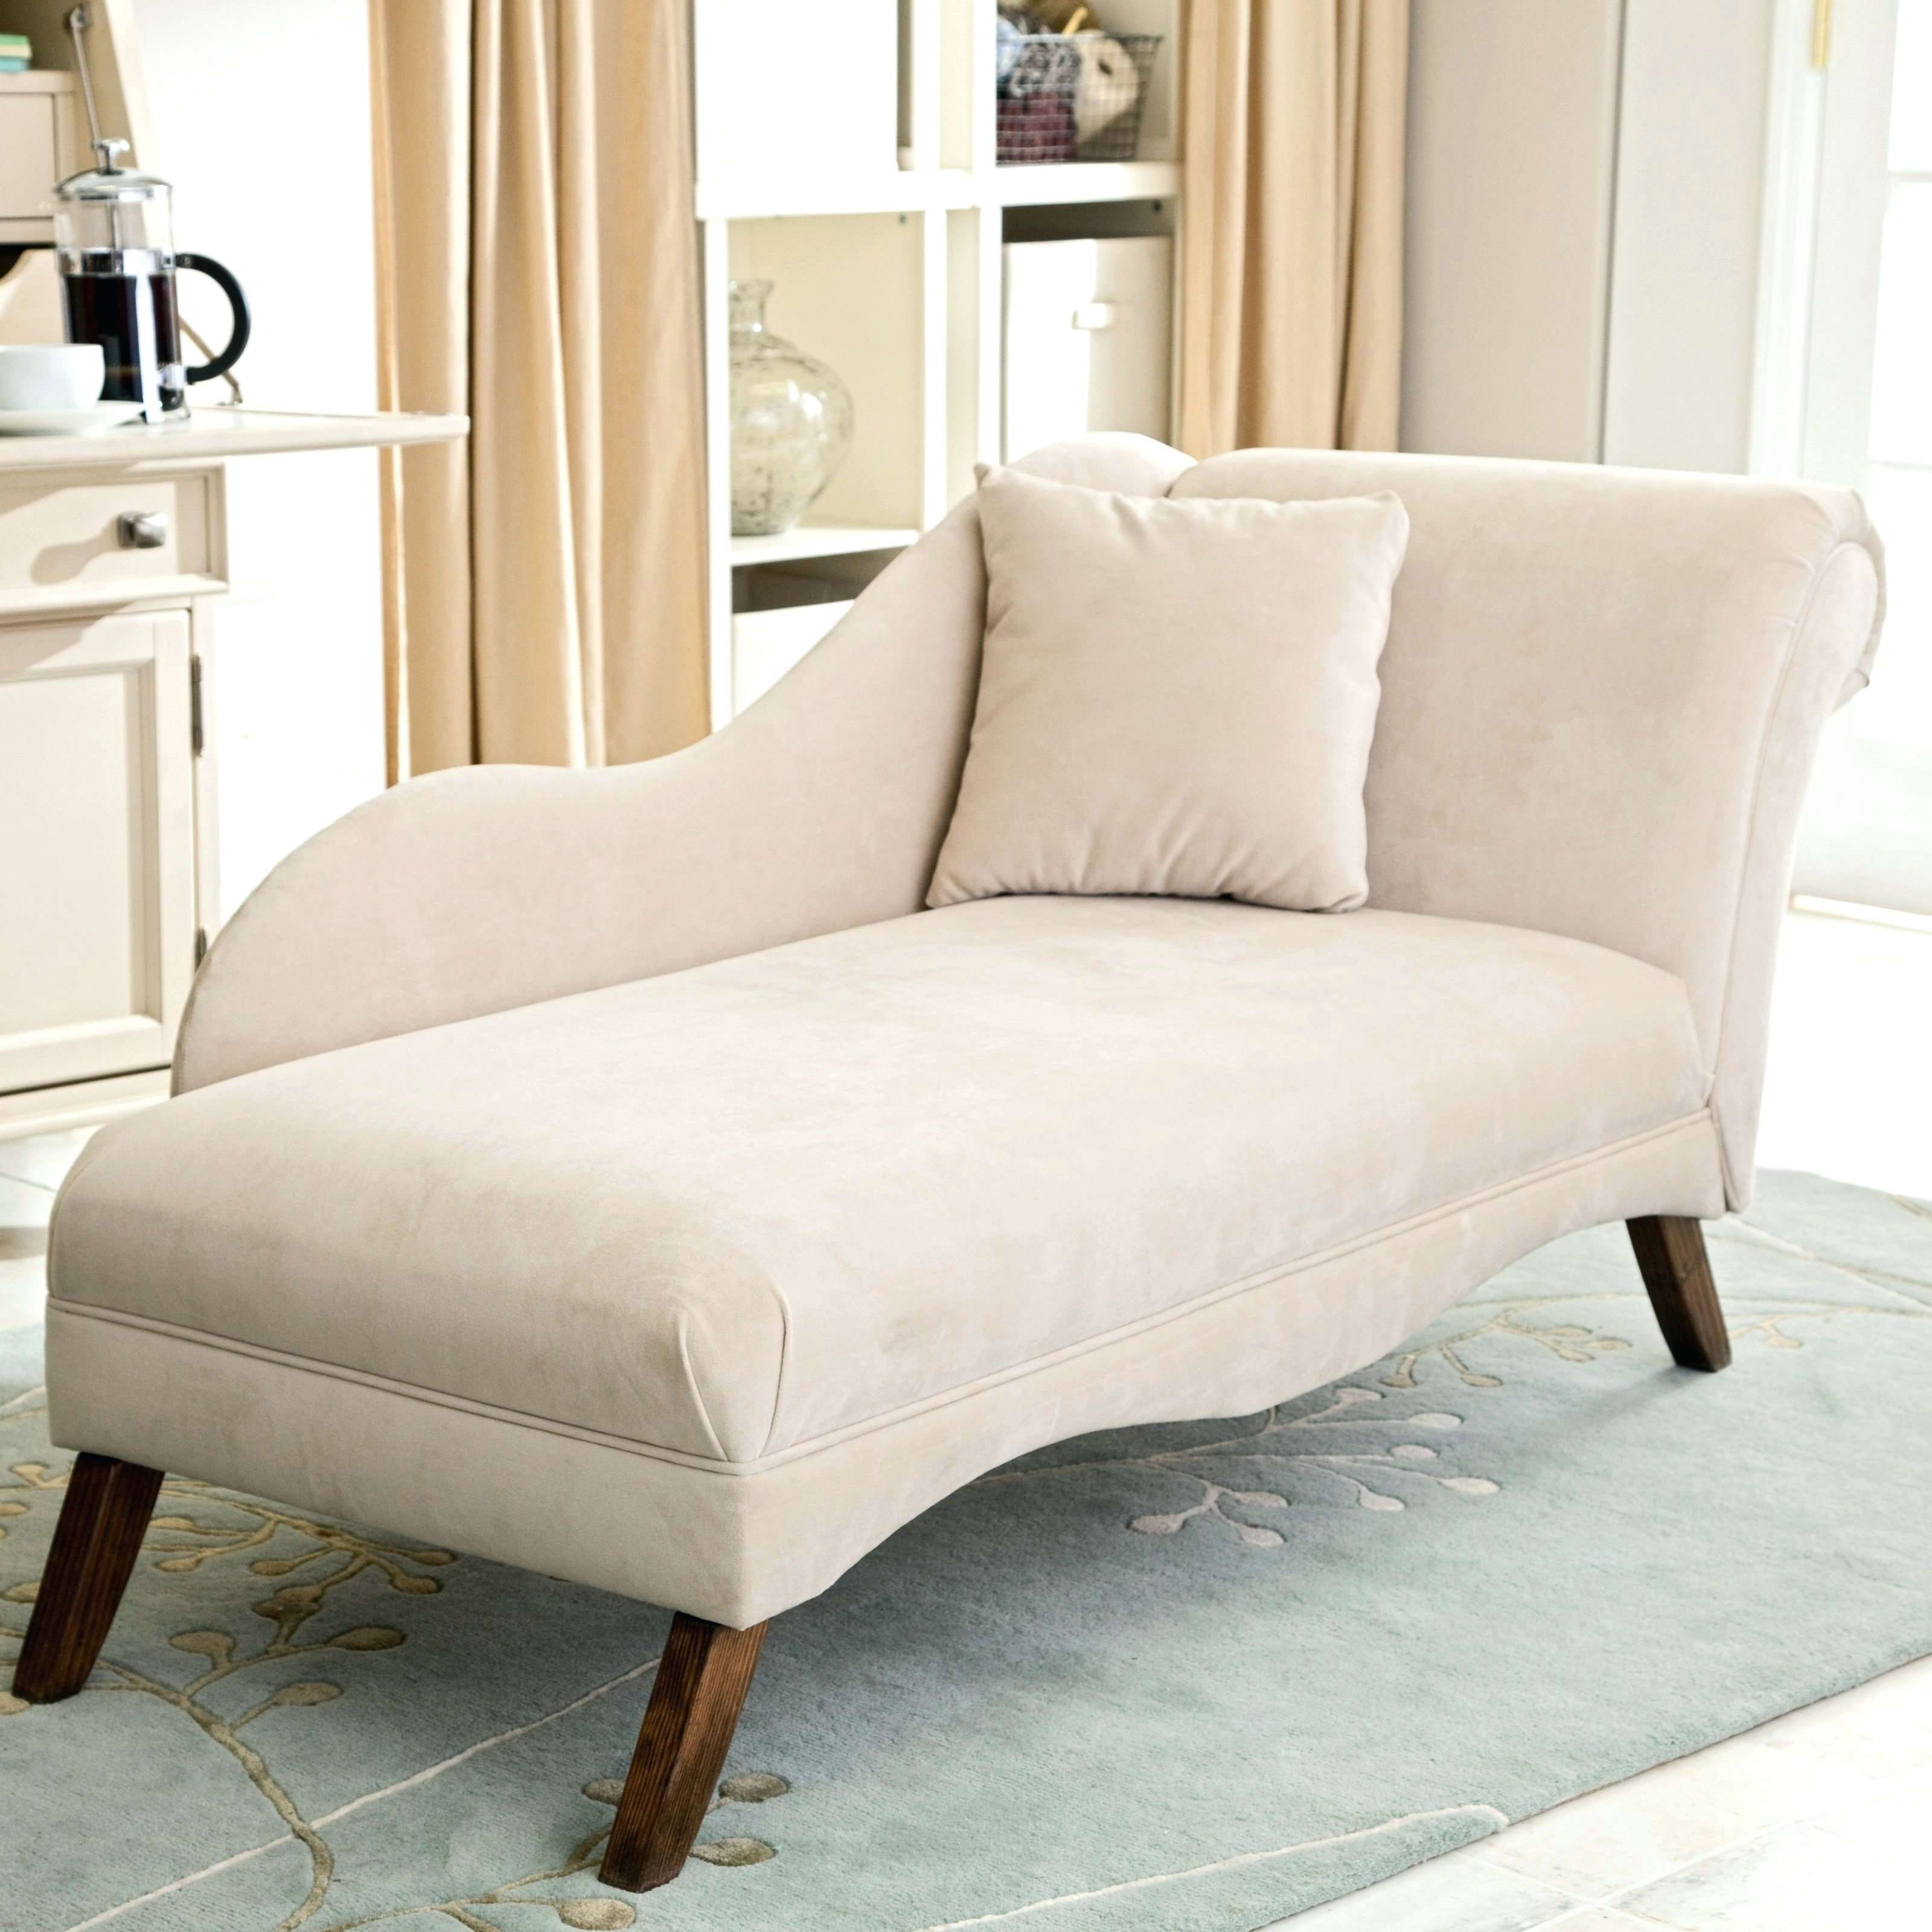 Best And Newest Upholstered Chaise Lounge Chairs • Lounge Chairs Ideas Inside Upholstered Chaises (View 2 of 15)